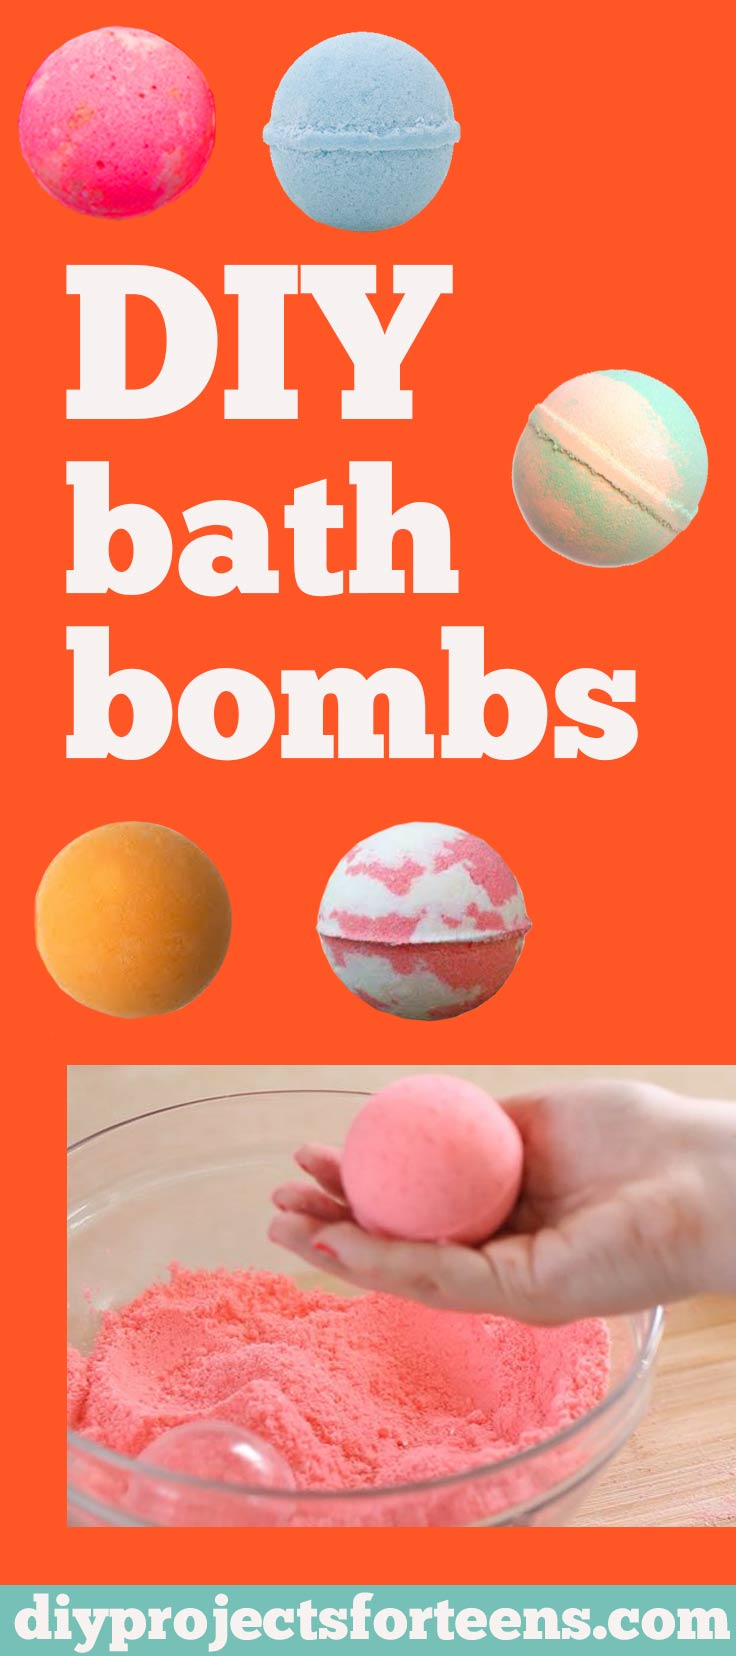 How to make diy lush bath bombs for Diy crafts with things around the house